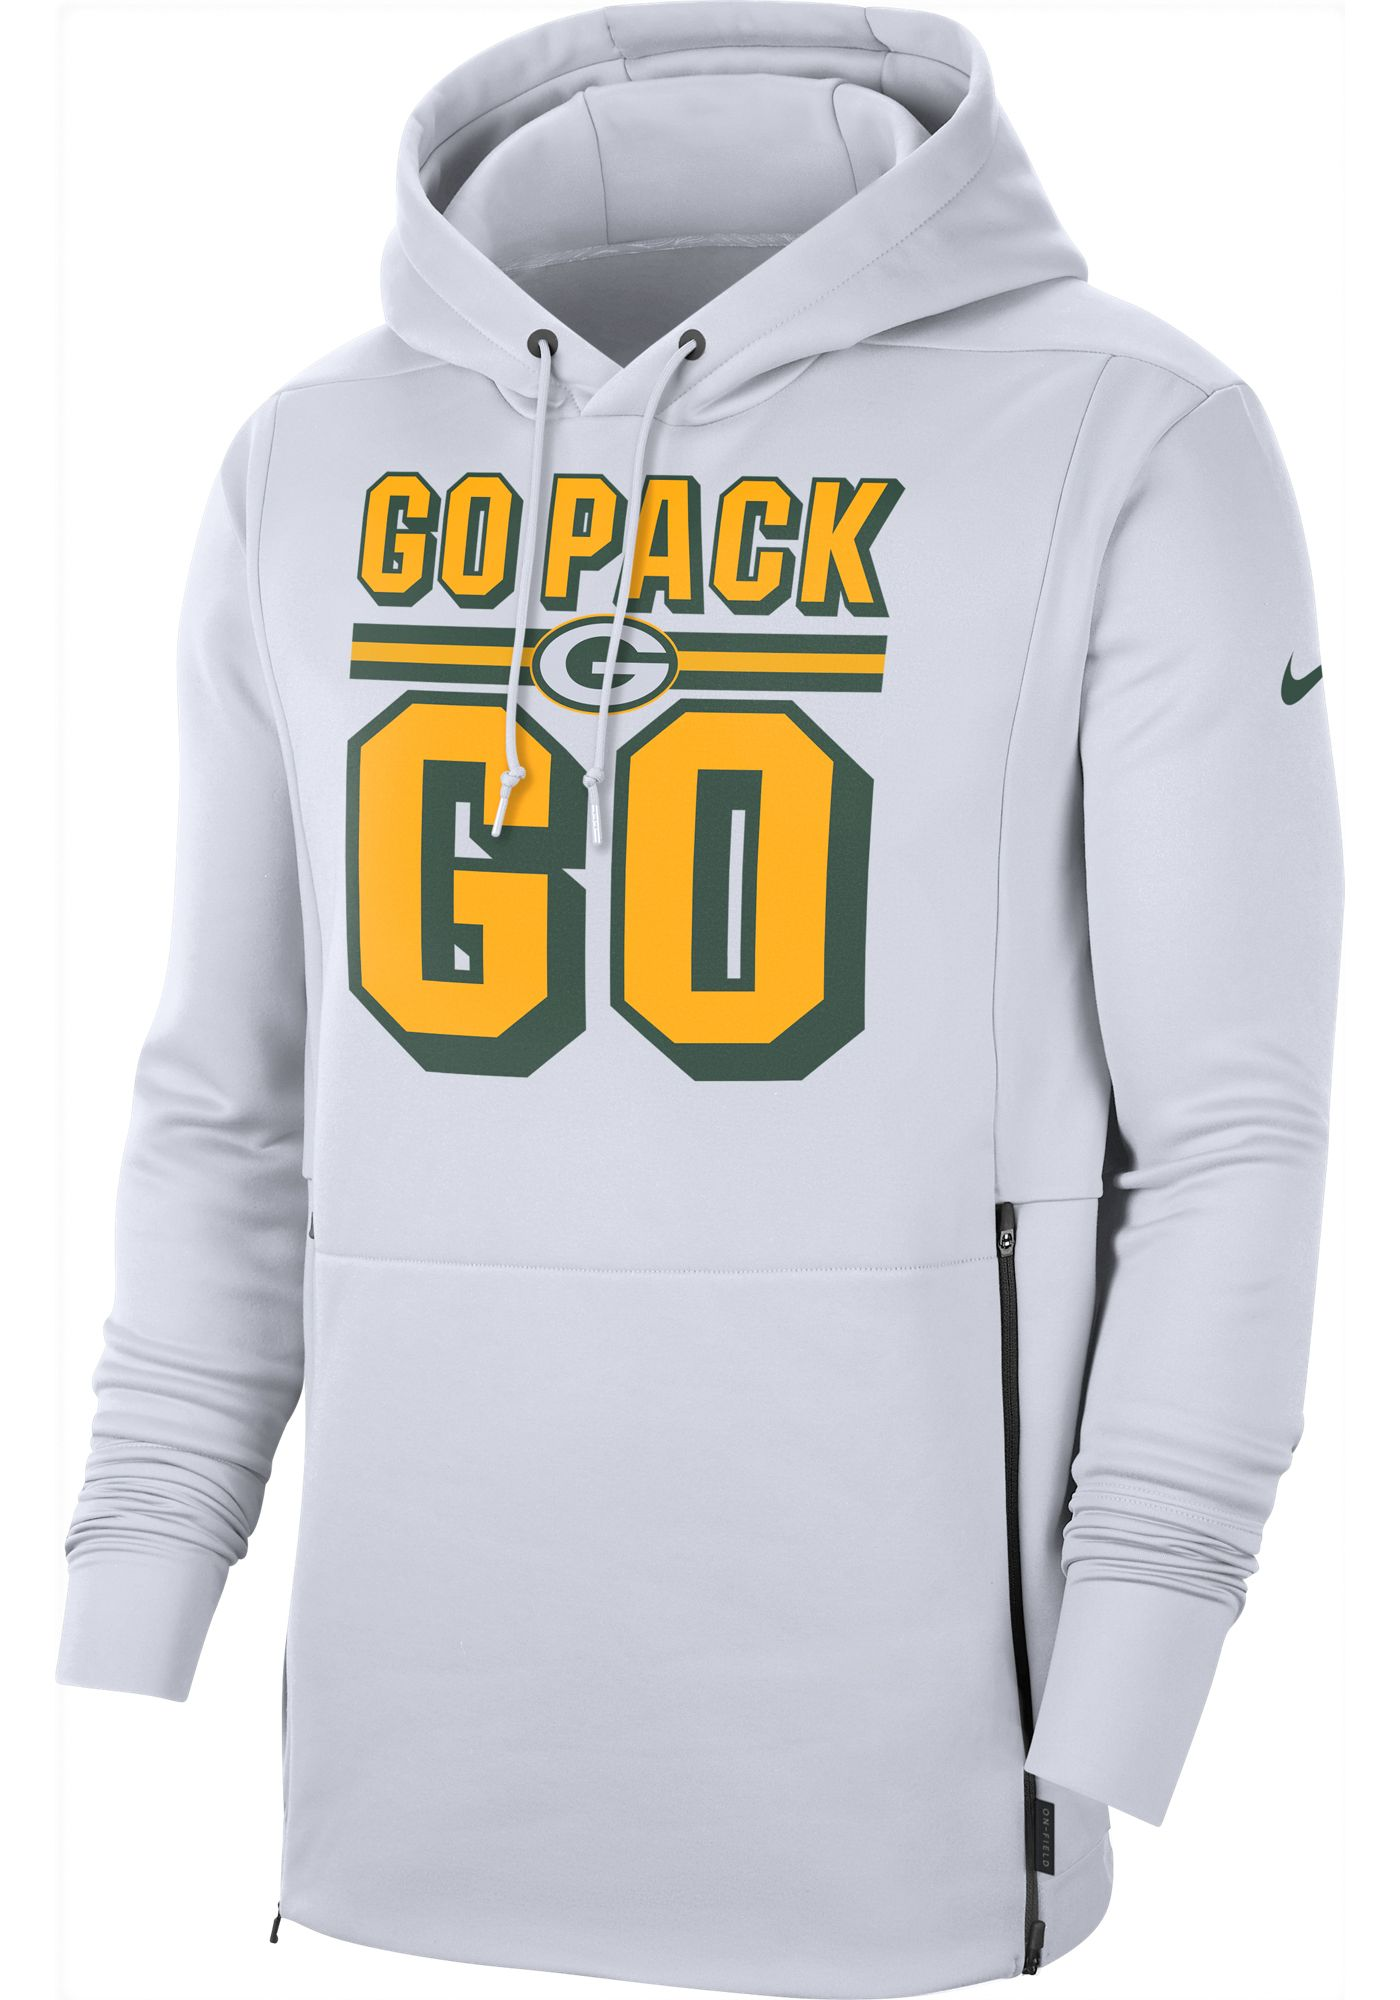 Nike Men's Green Bay Packers Sideline Therma-FIT Local White Performance Hoodie